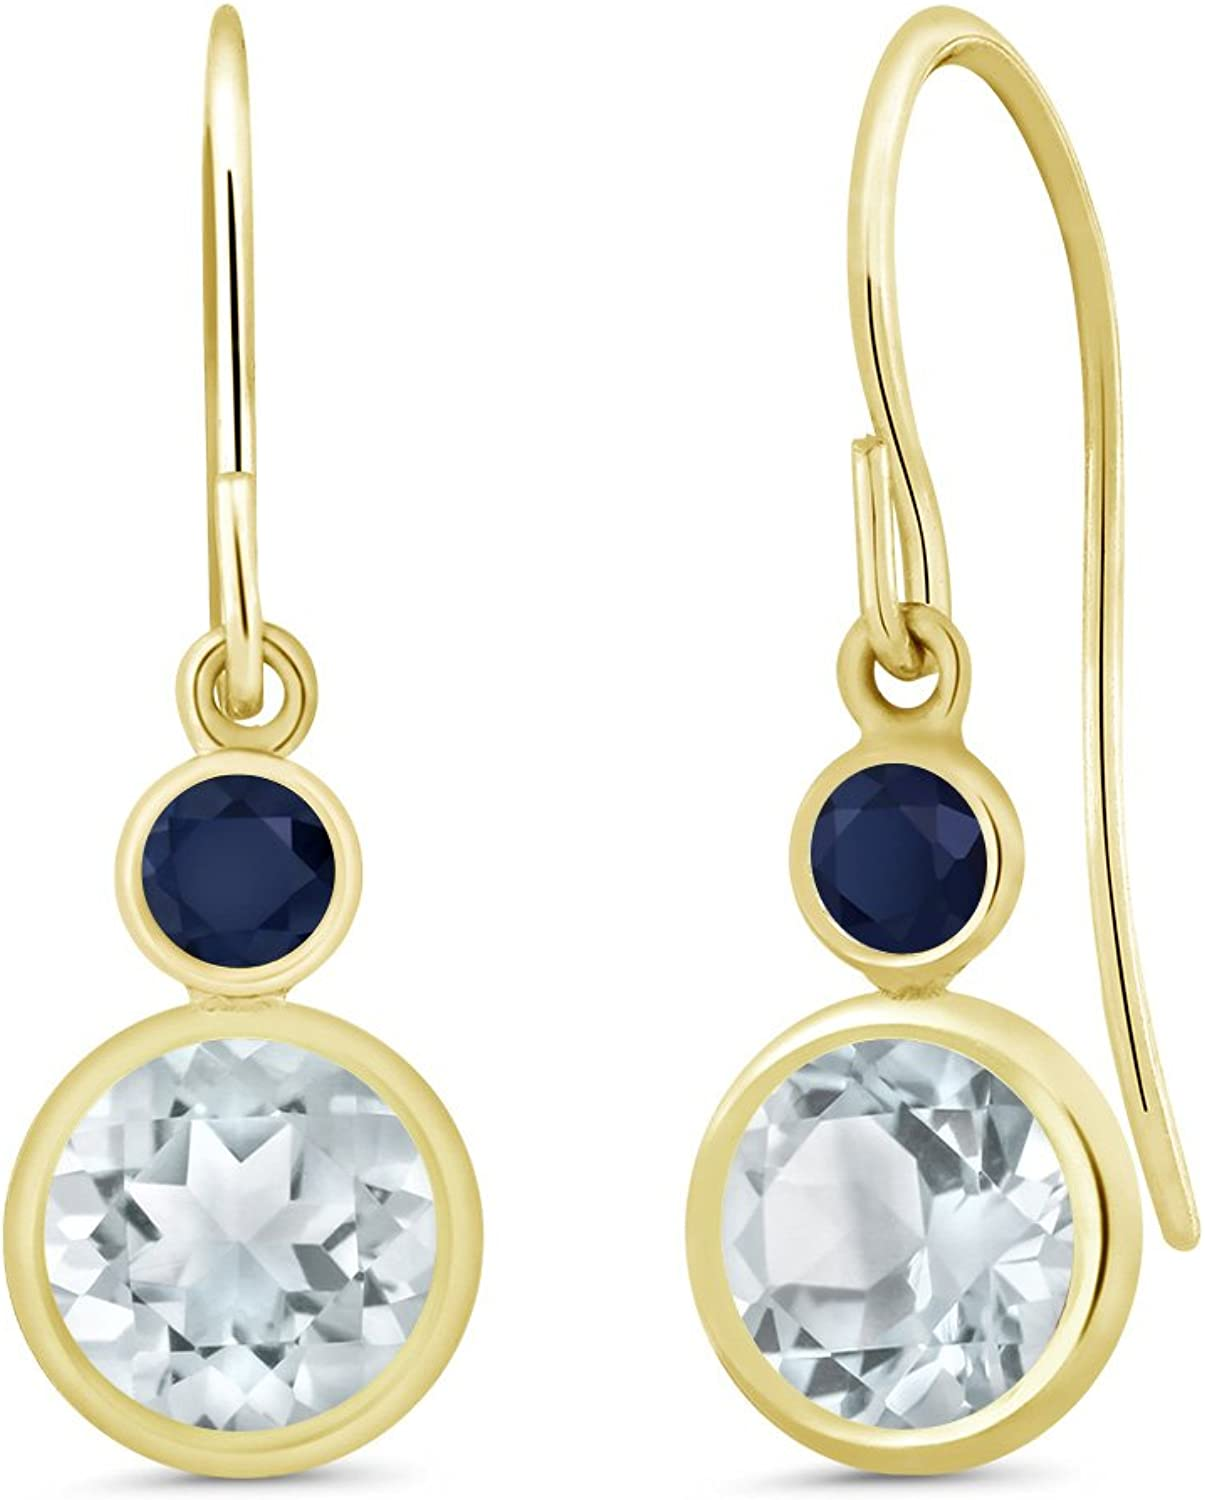 1.76 Ct Round Sky bluee Aquamarine bluee Sapphire 14K Yellow gold Earrings